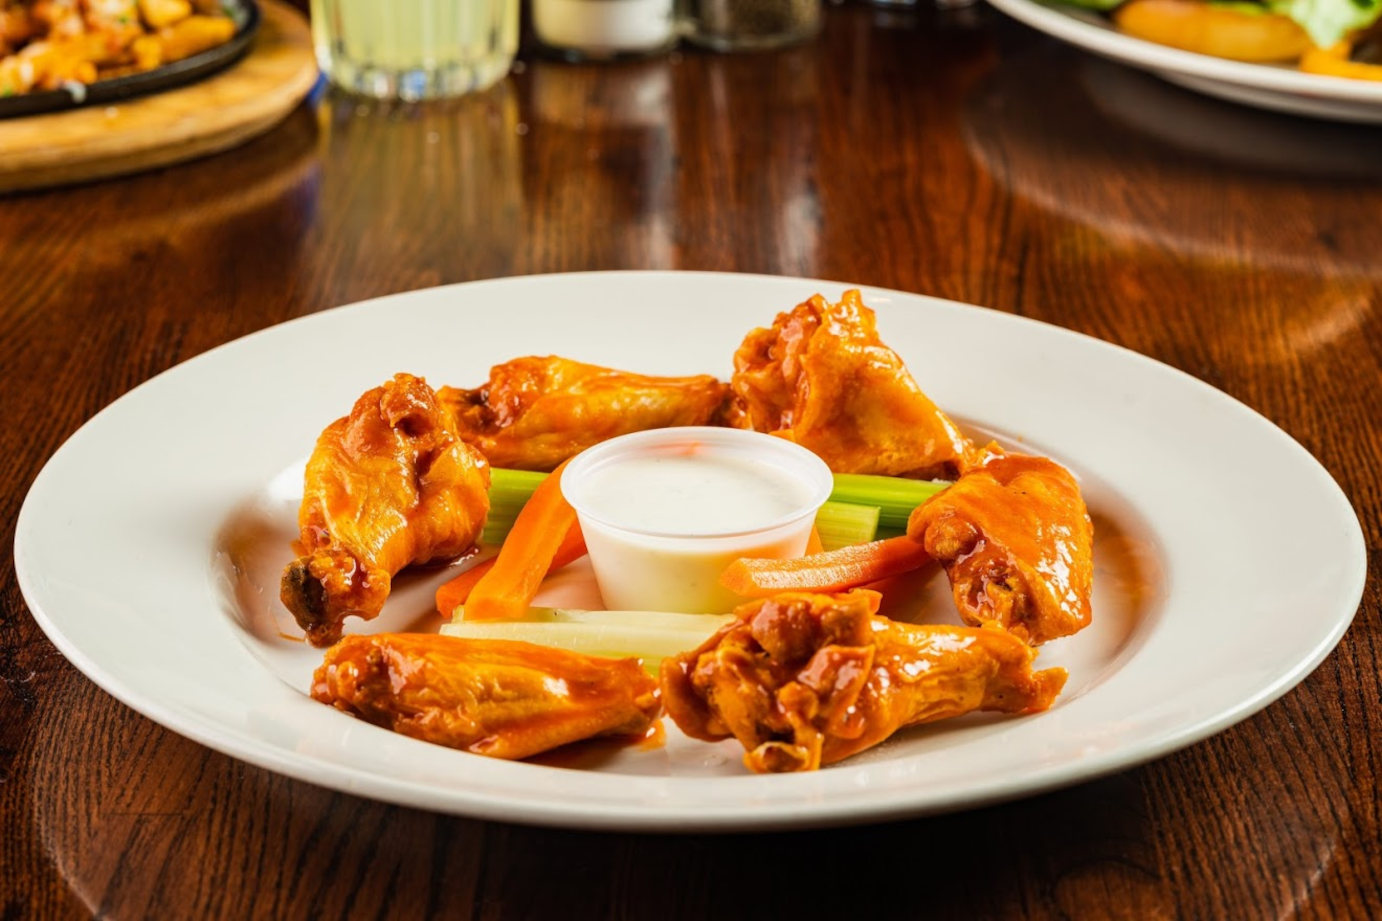 Boneless wings with celery and carrots sticks